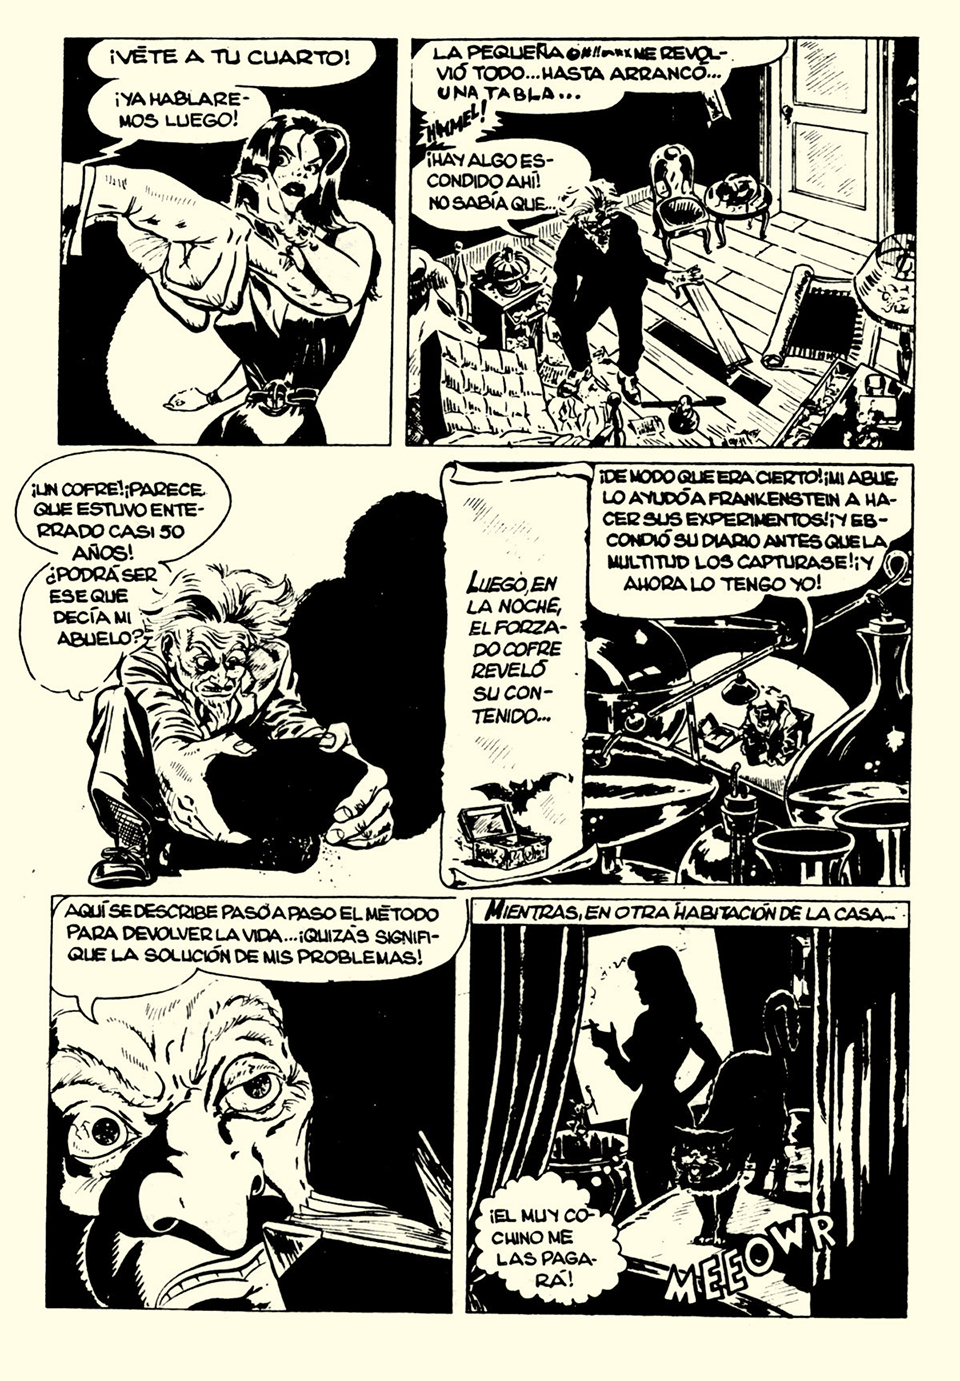 Pagina 3 art by CM Federici